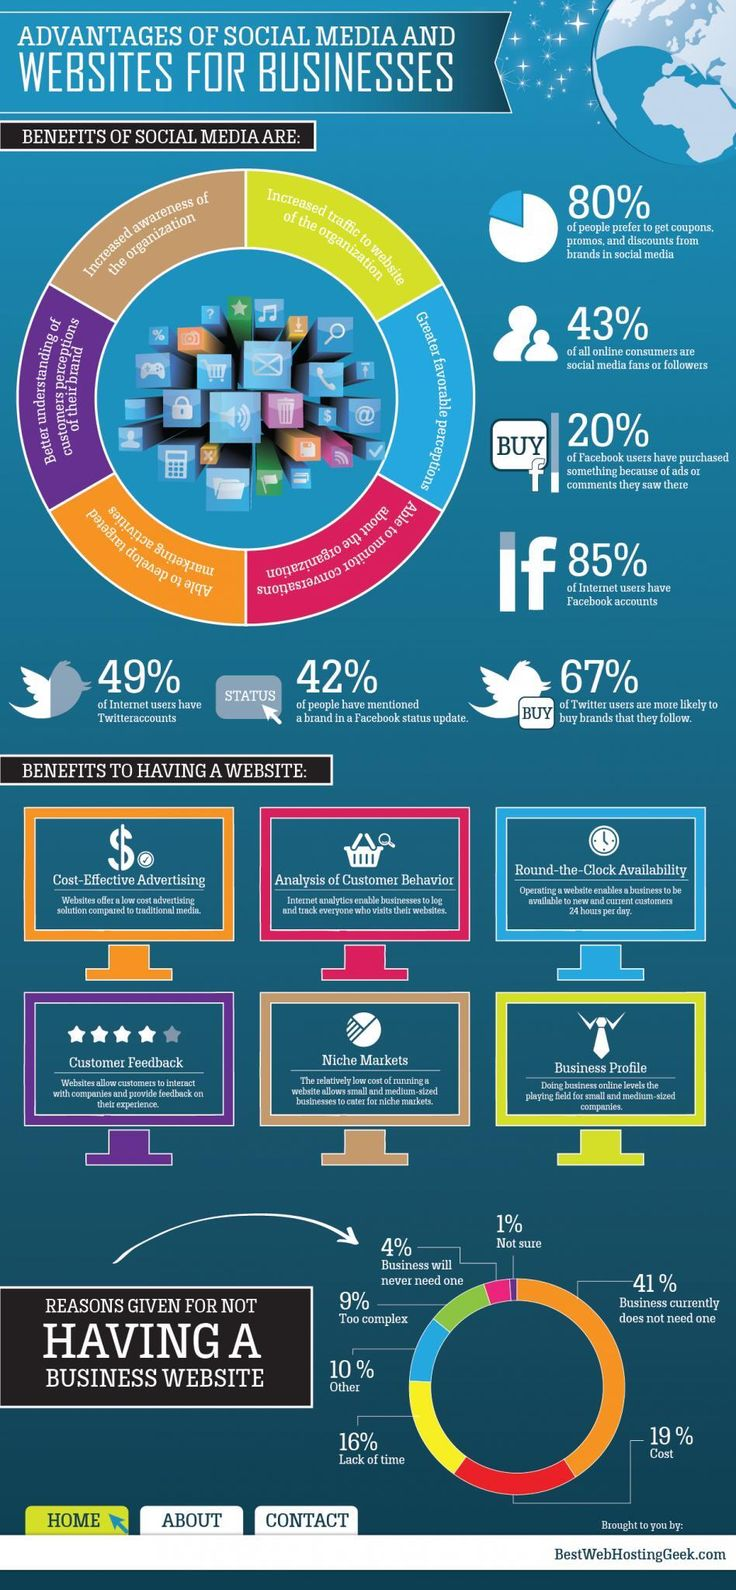 Advantages of Social Media And Websites For Businesses.